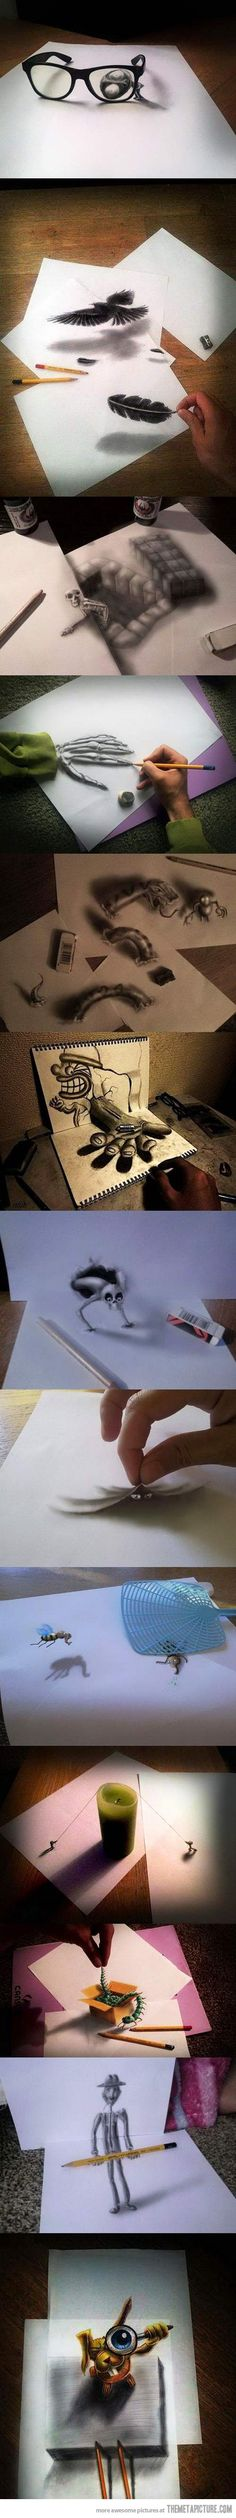 Awesome 3D Optical Illusions…This is Legit